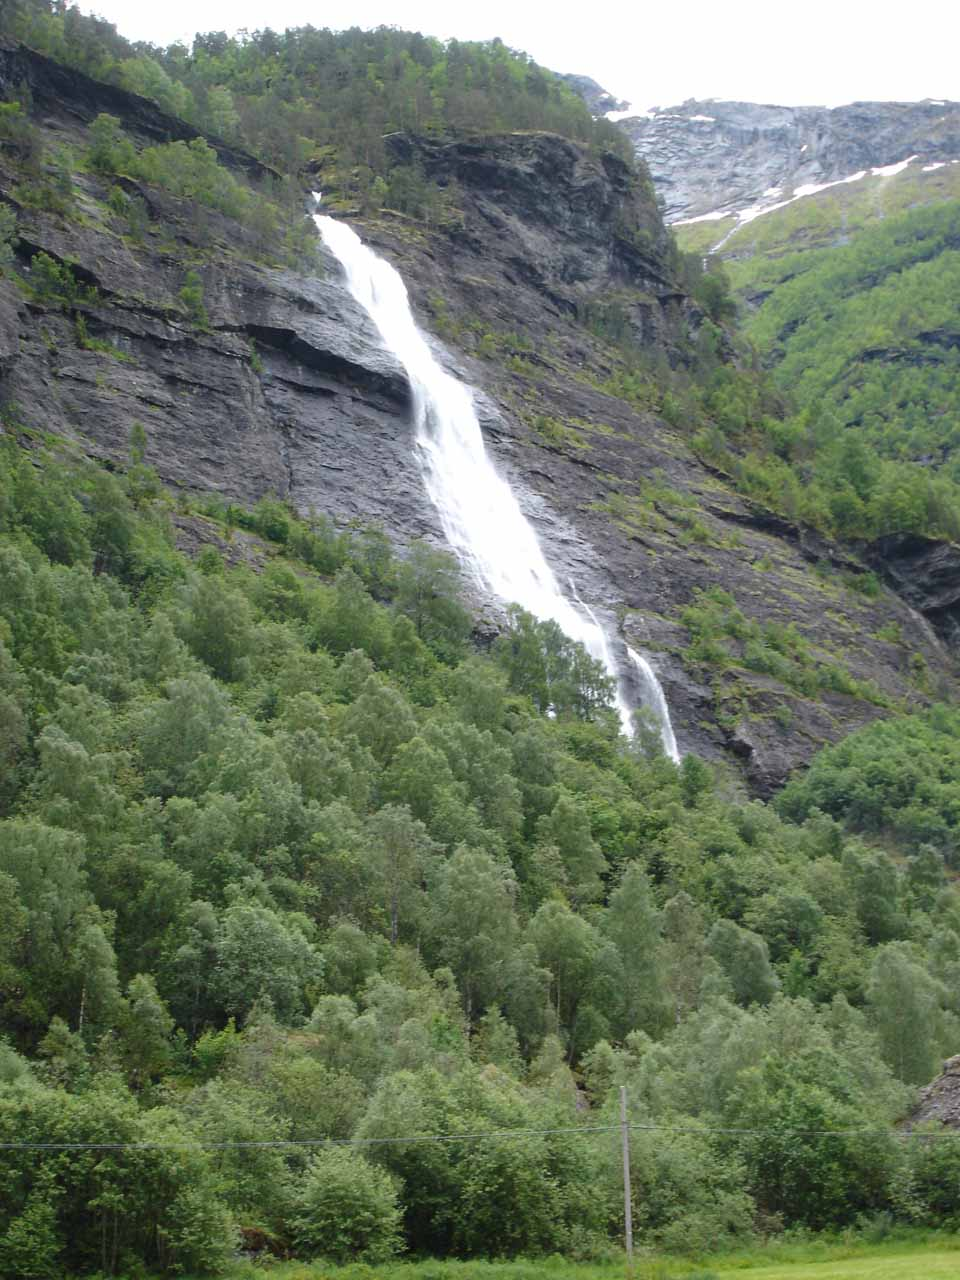 Angled view of Vassbakkfossen as we were approaching it from the east